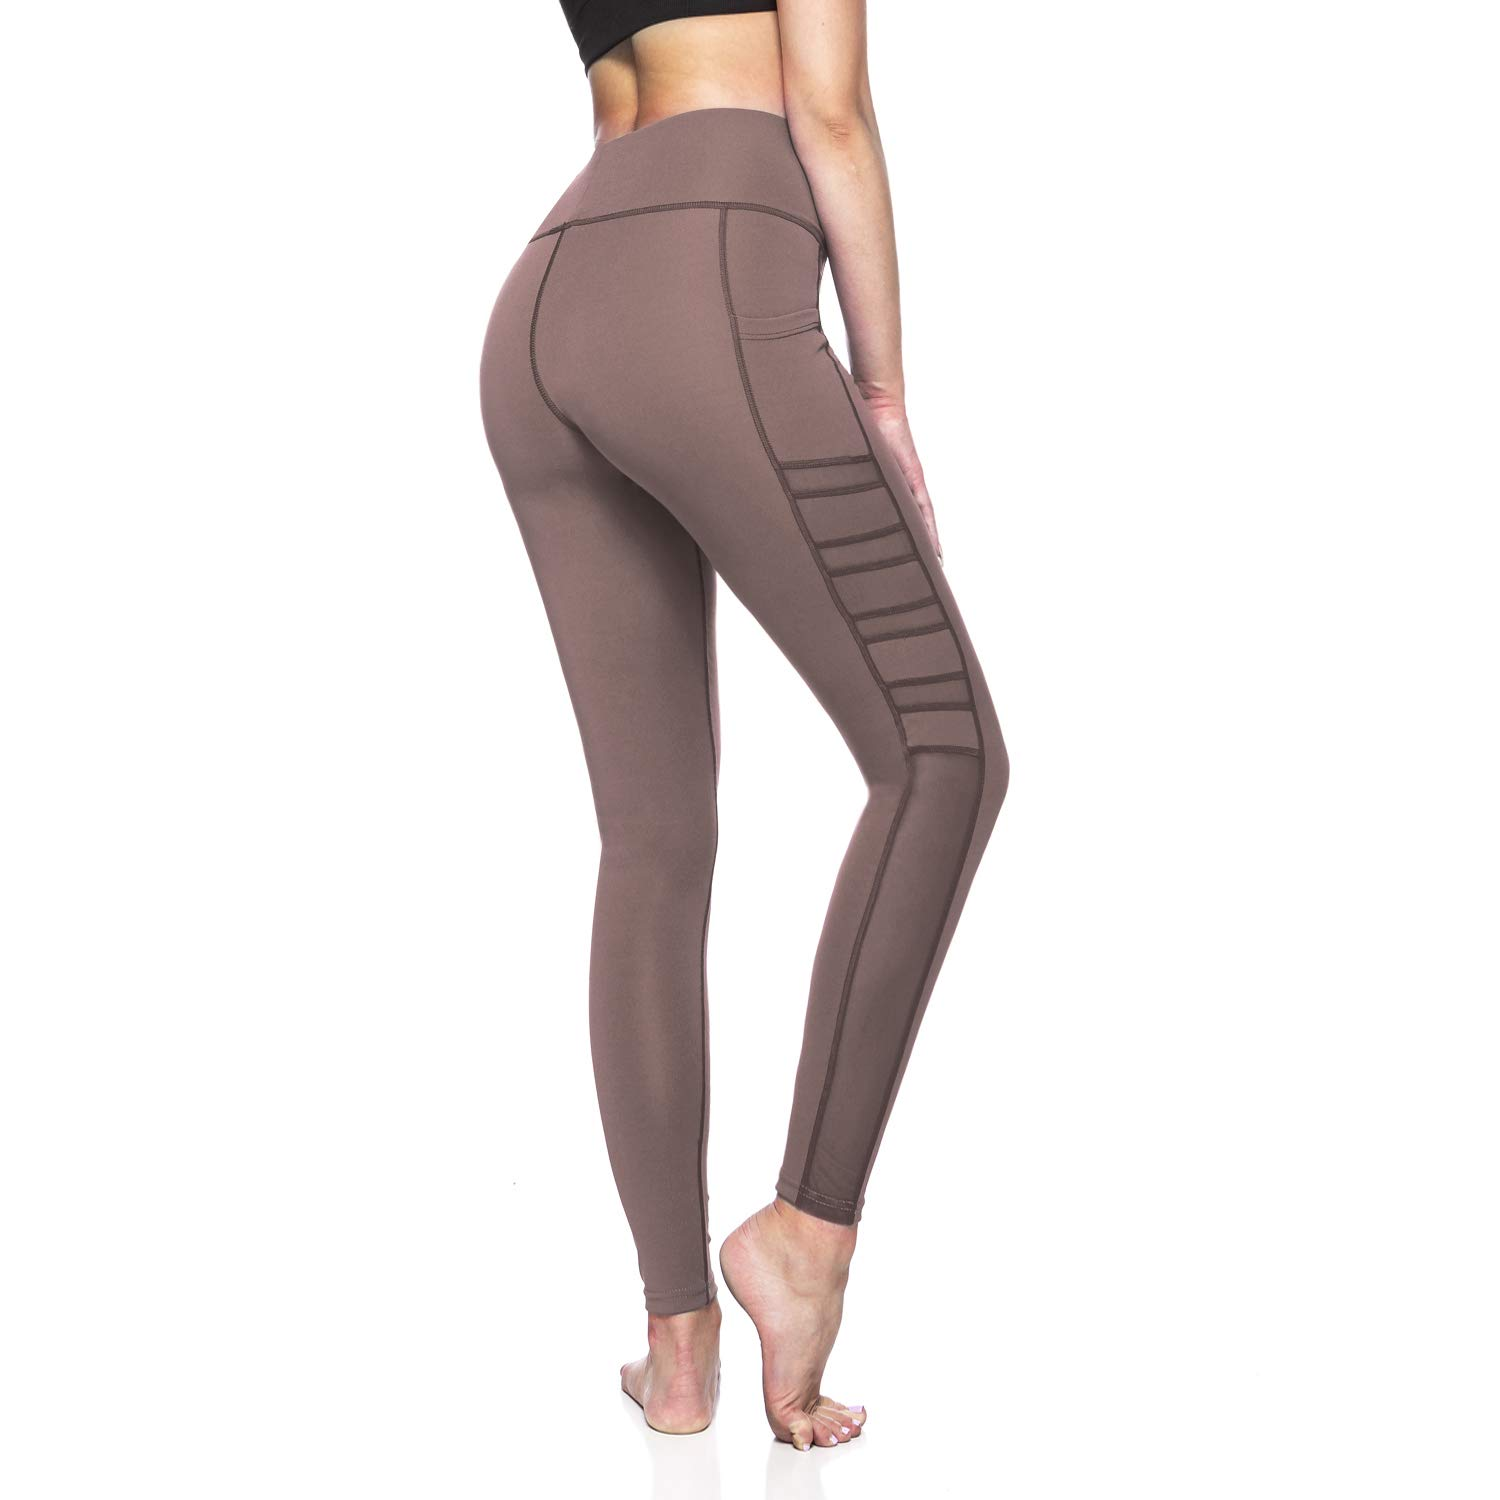 VALINNA Women's Leggings Yoga Pants with Pockets High-Waist Tummy Control for Workout Running Exercise Sports Fitness Gym